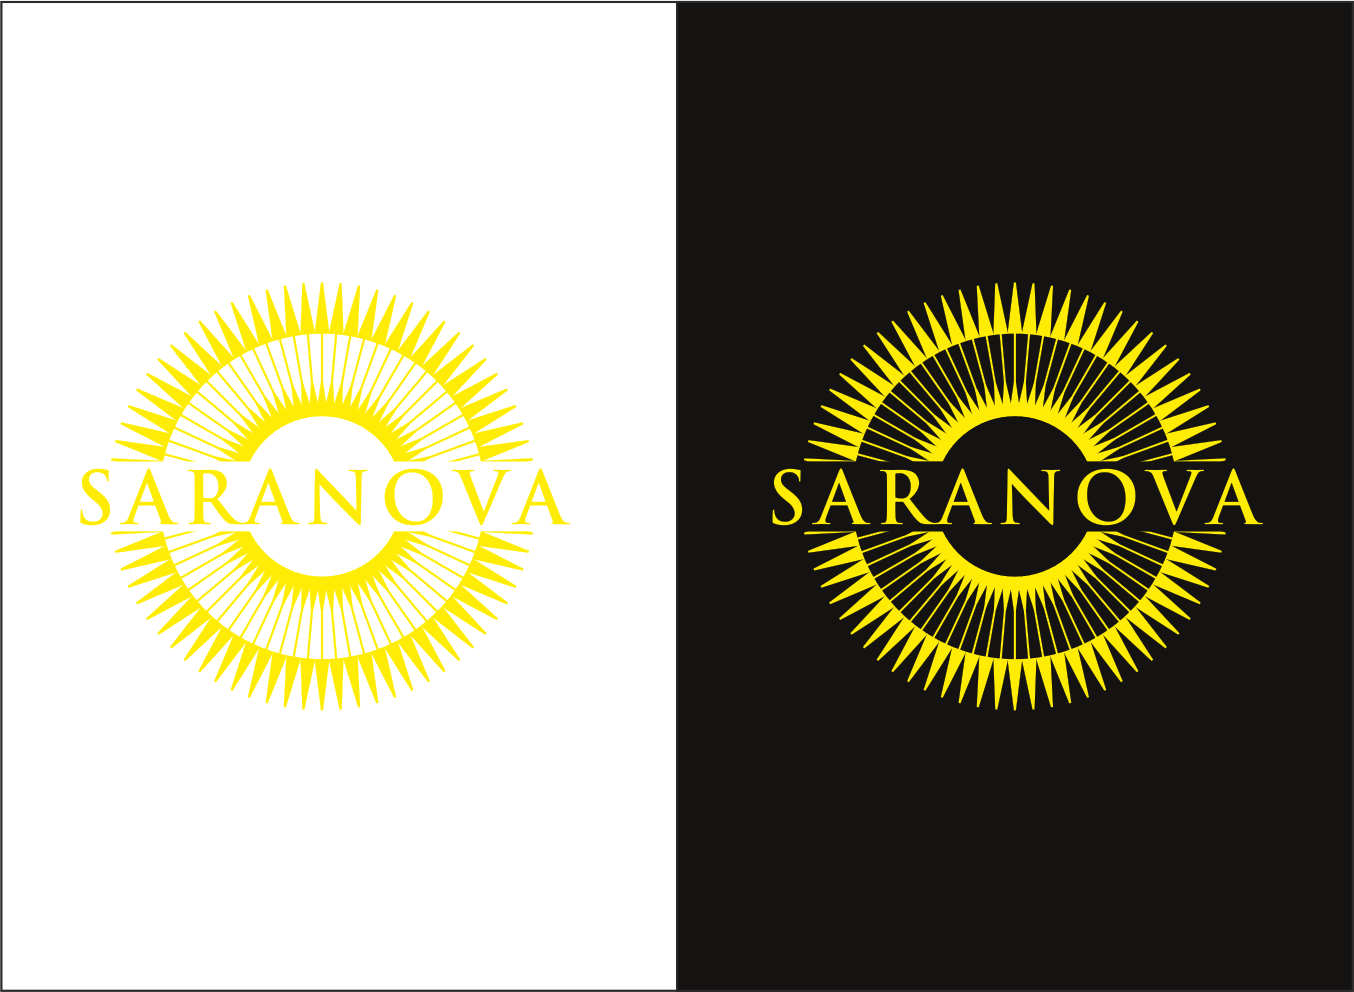 Logo Design by Danishafa  Srg Dsalfidation - Entry No. 96 in the Logo Design Contest Artistic Logo Design for Saranova.